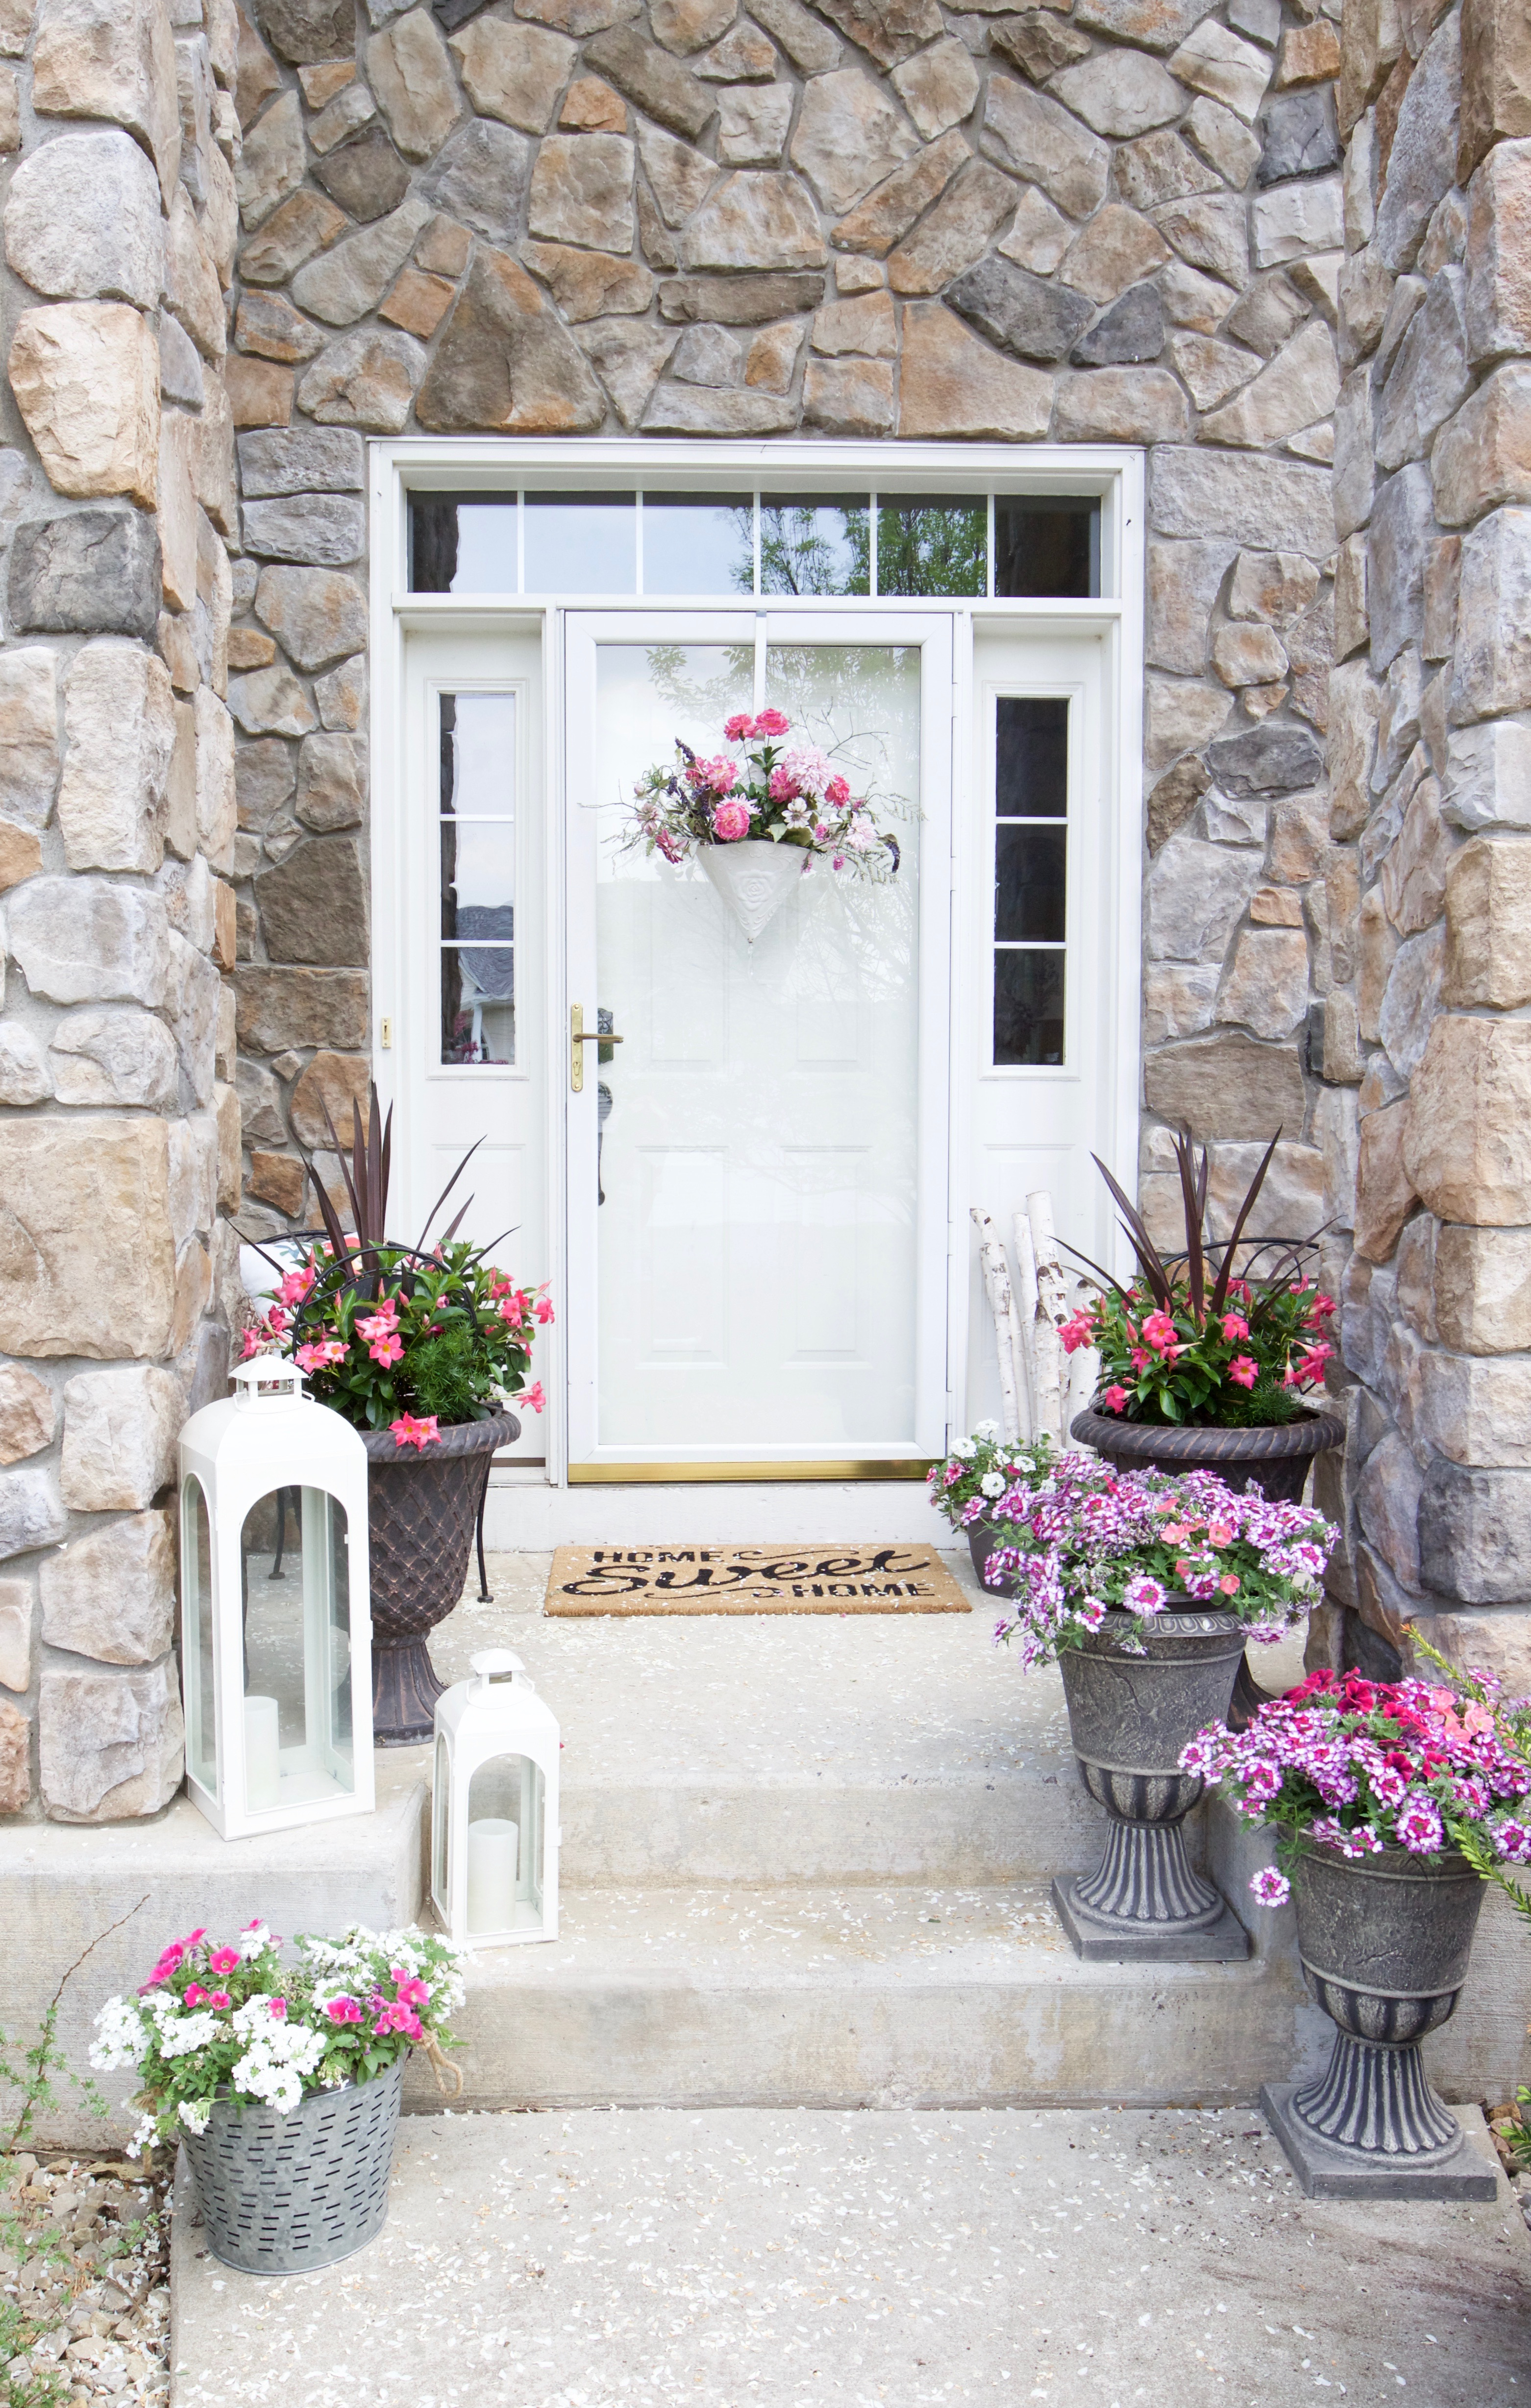 Decorating with Potted Flowers on the Front Porch - A